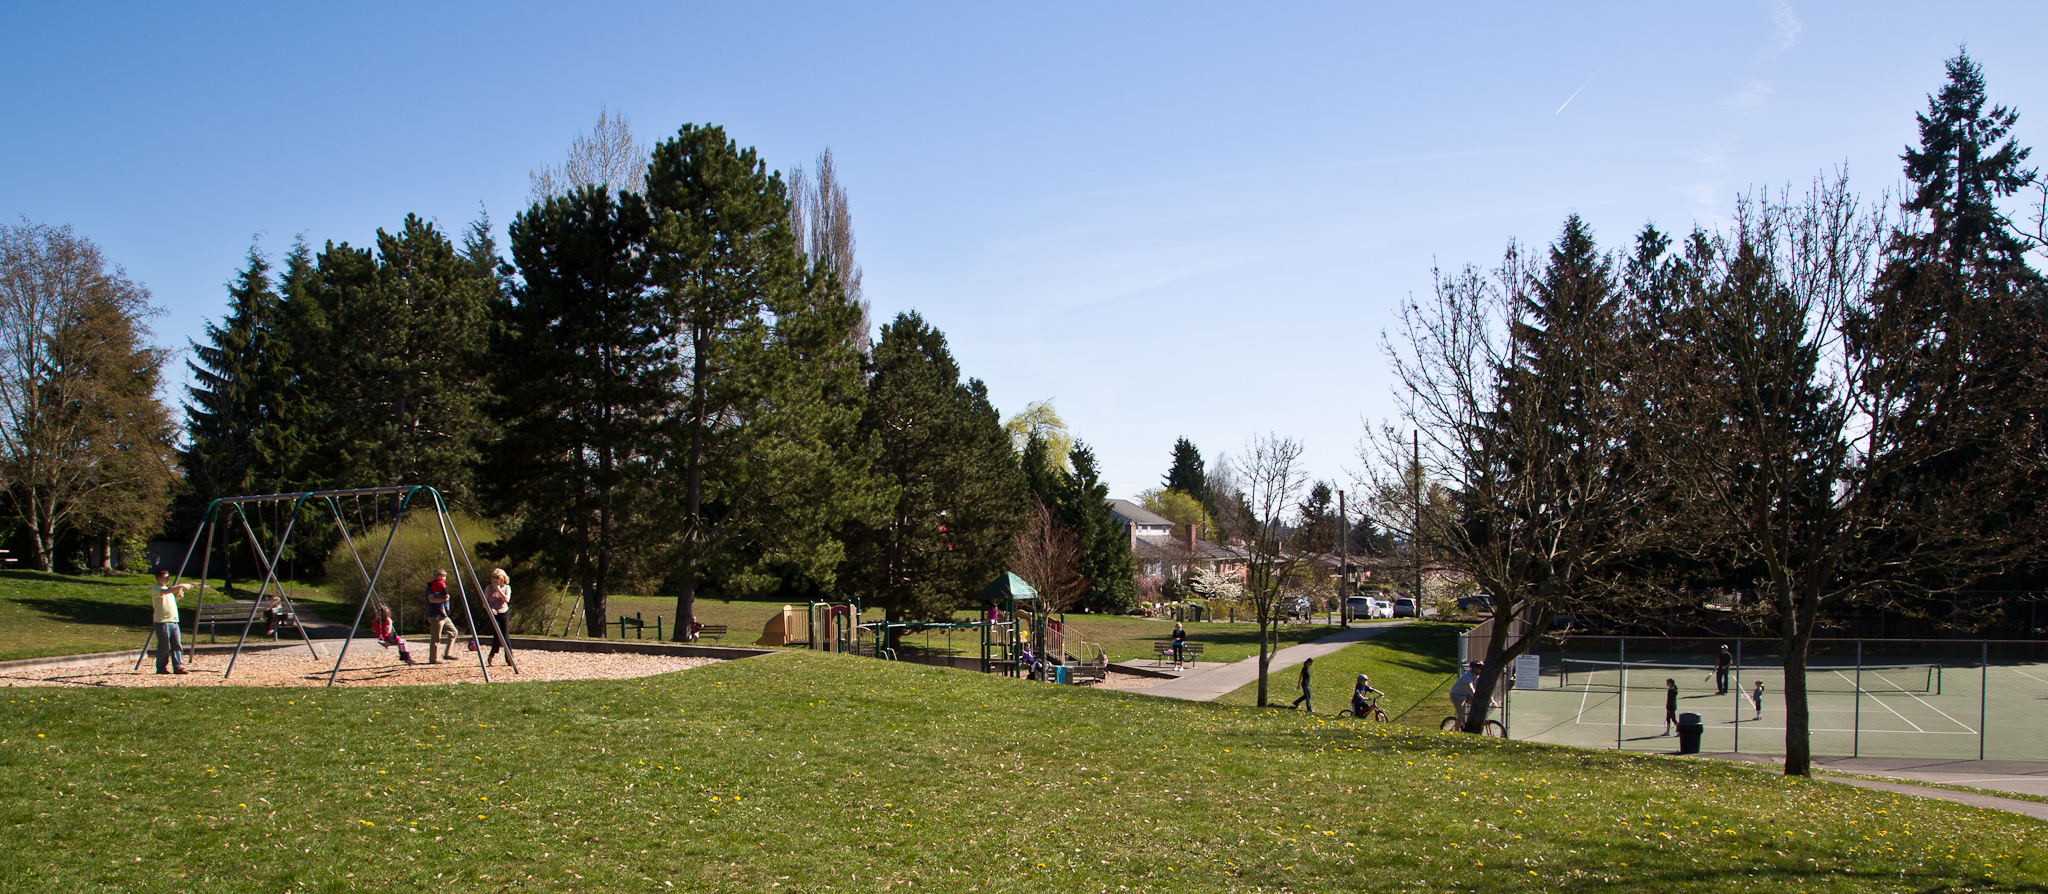 File:Bryant Playground, Seattle, March 2013.jpg - Wikipedia